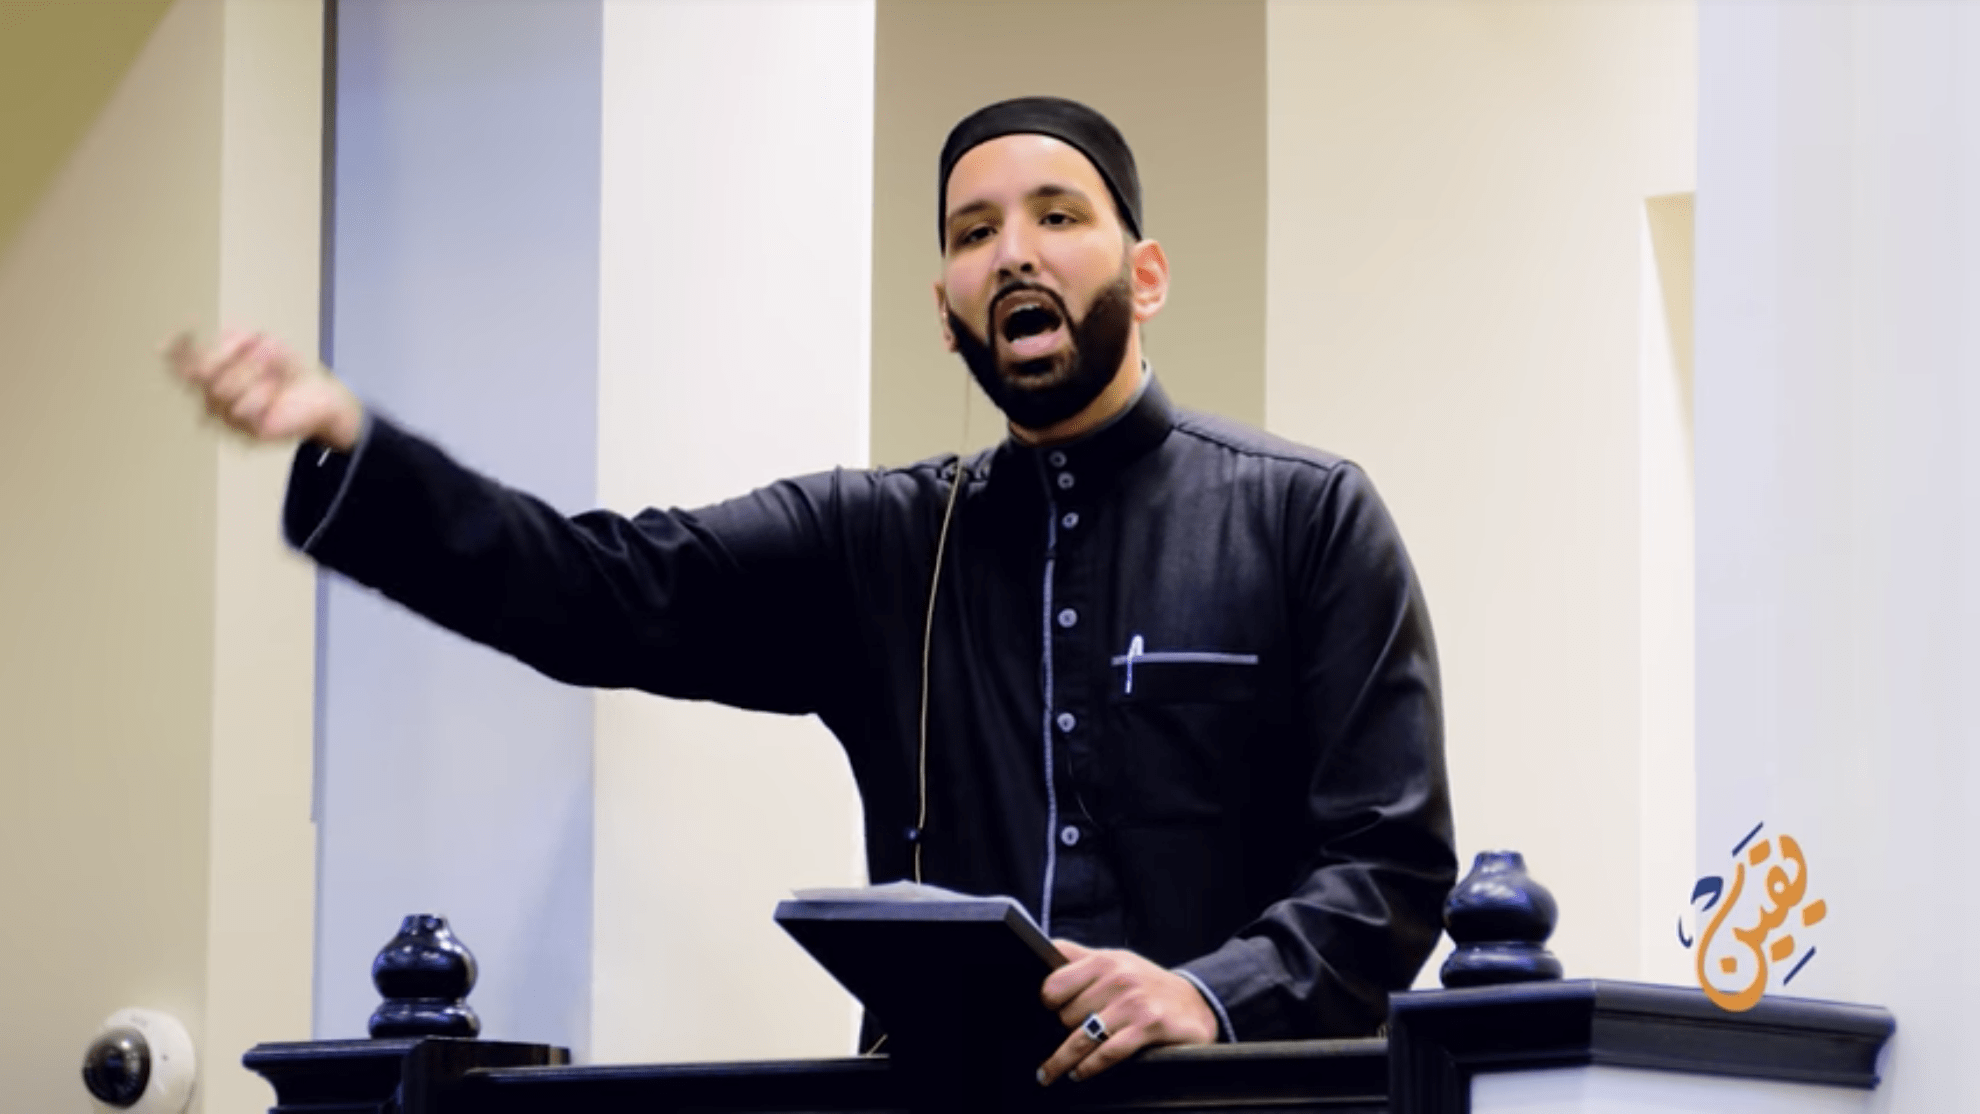 Omar Suleiman – Why Do Innocent People Suffer?